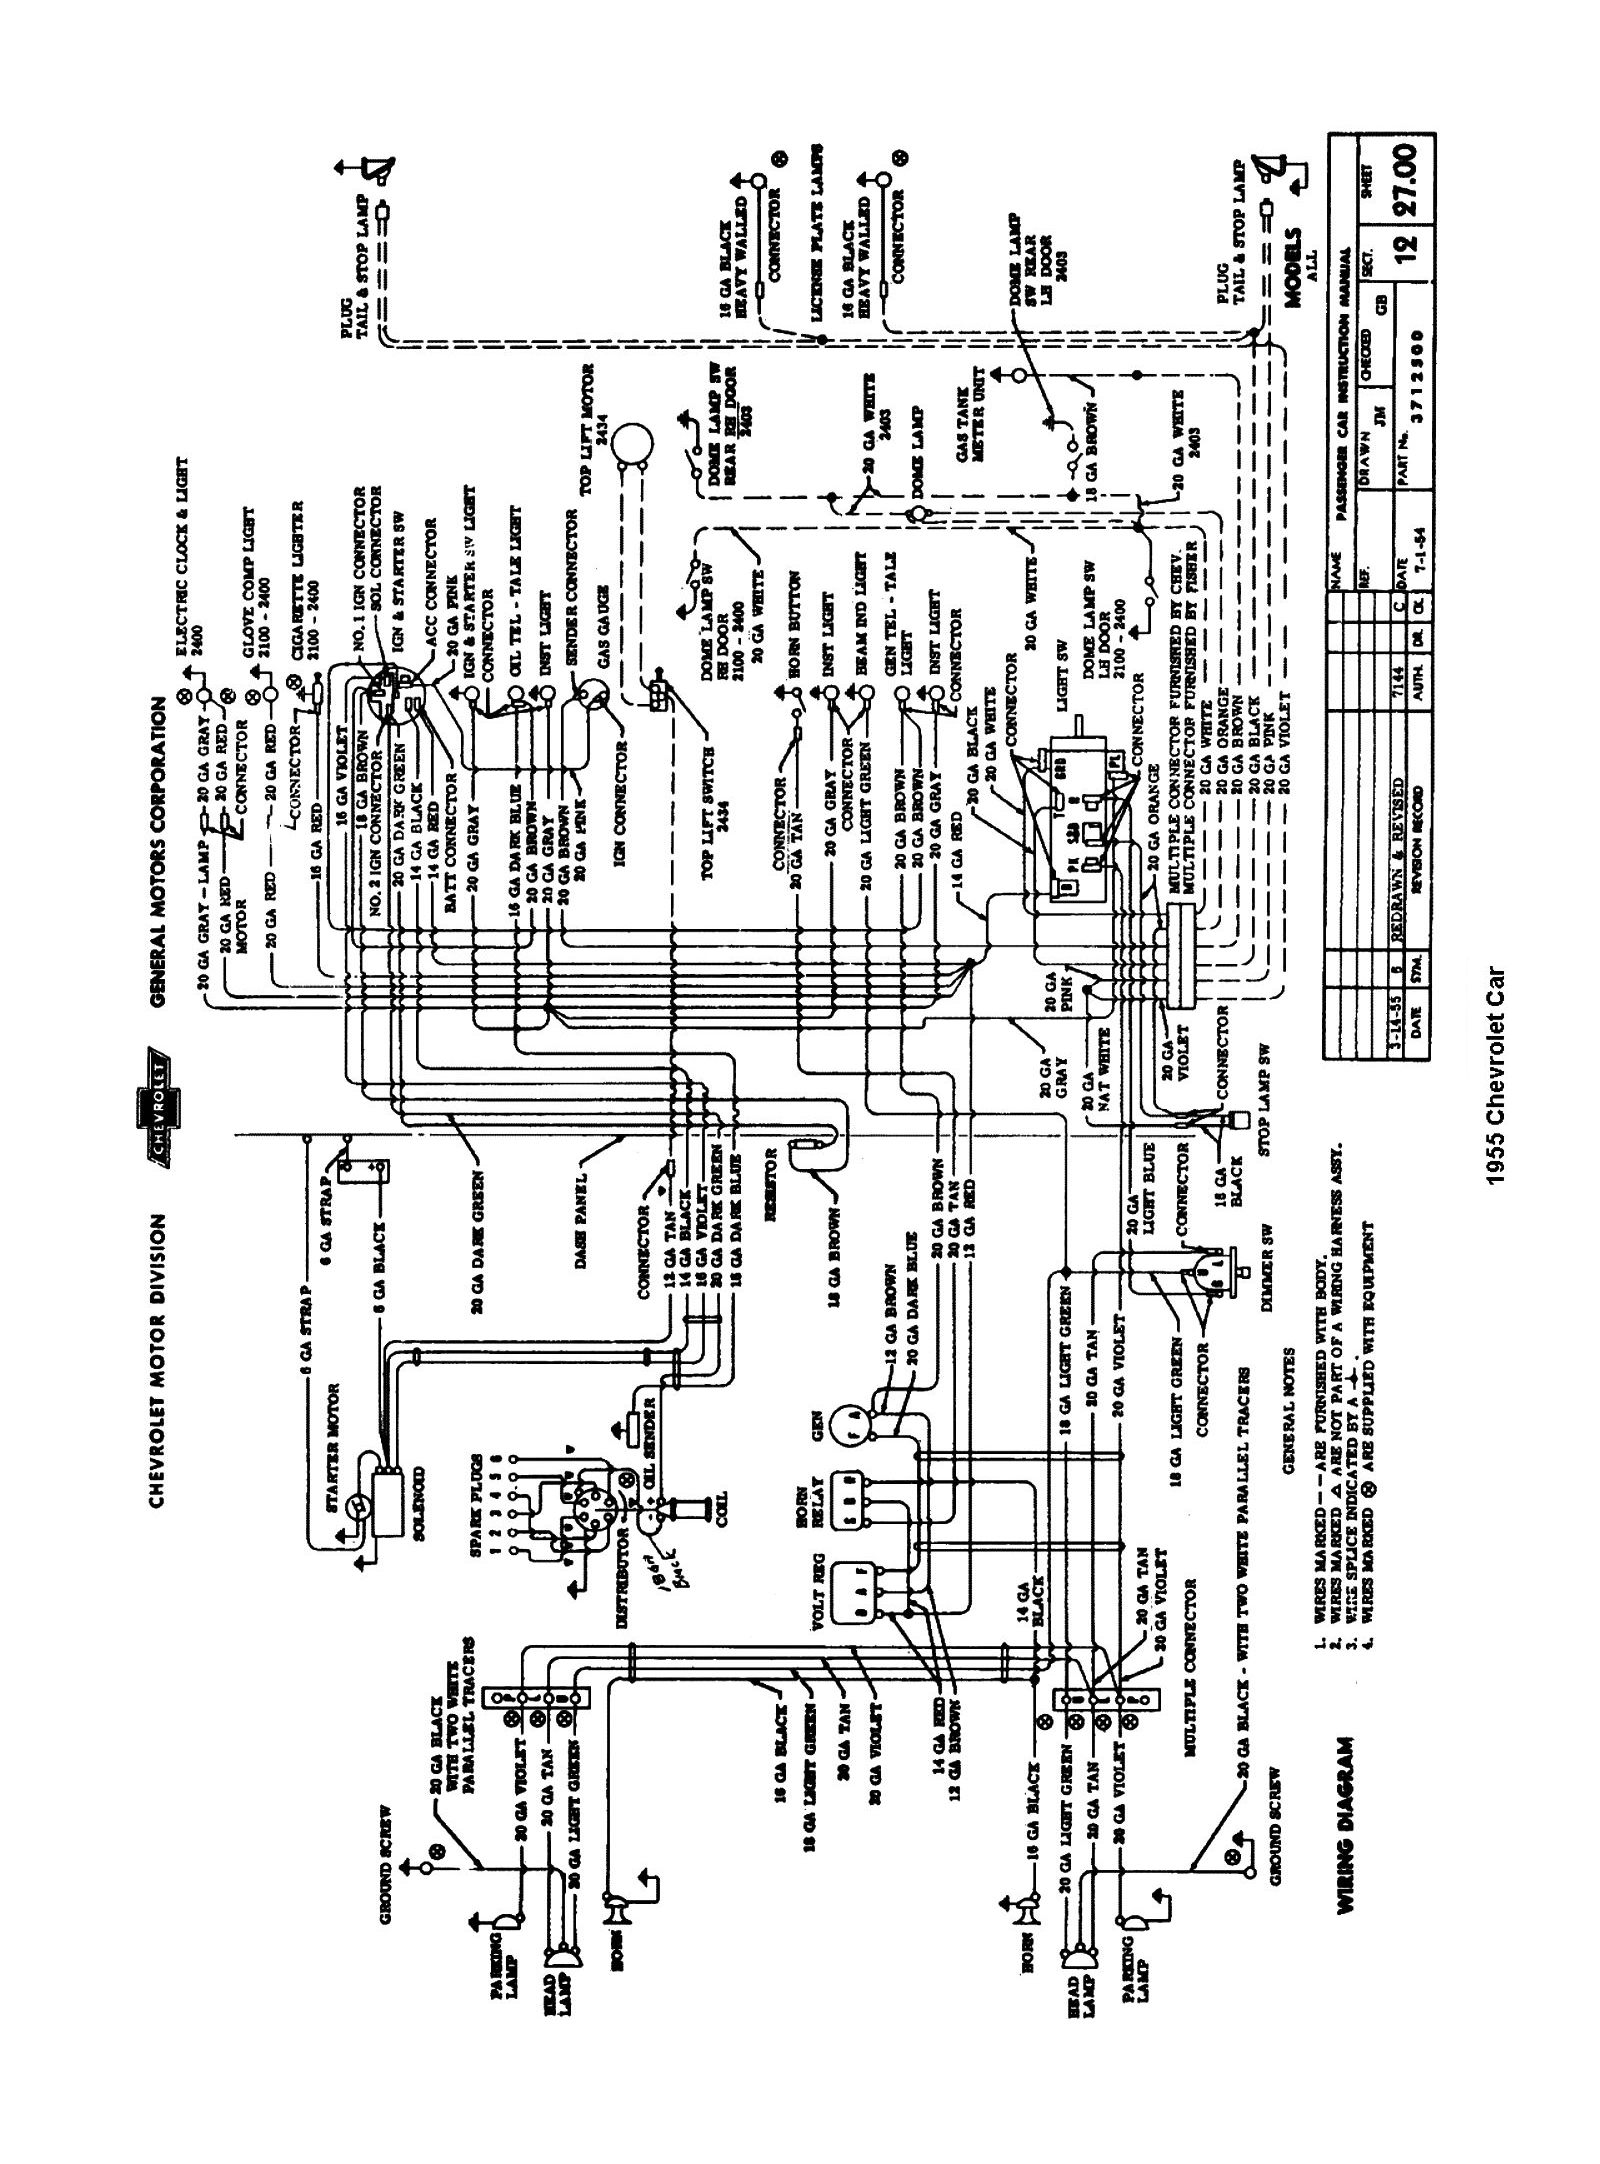 55 chevy color wiring diagram trifive 1955 1956 1955 chevrolet wiring diagram - data set 55 chevy brake wiring